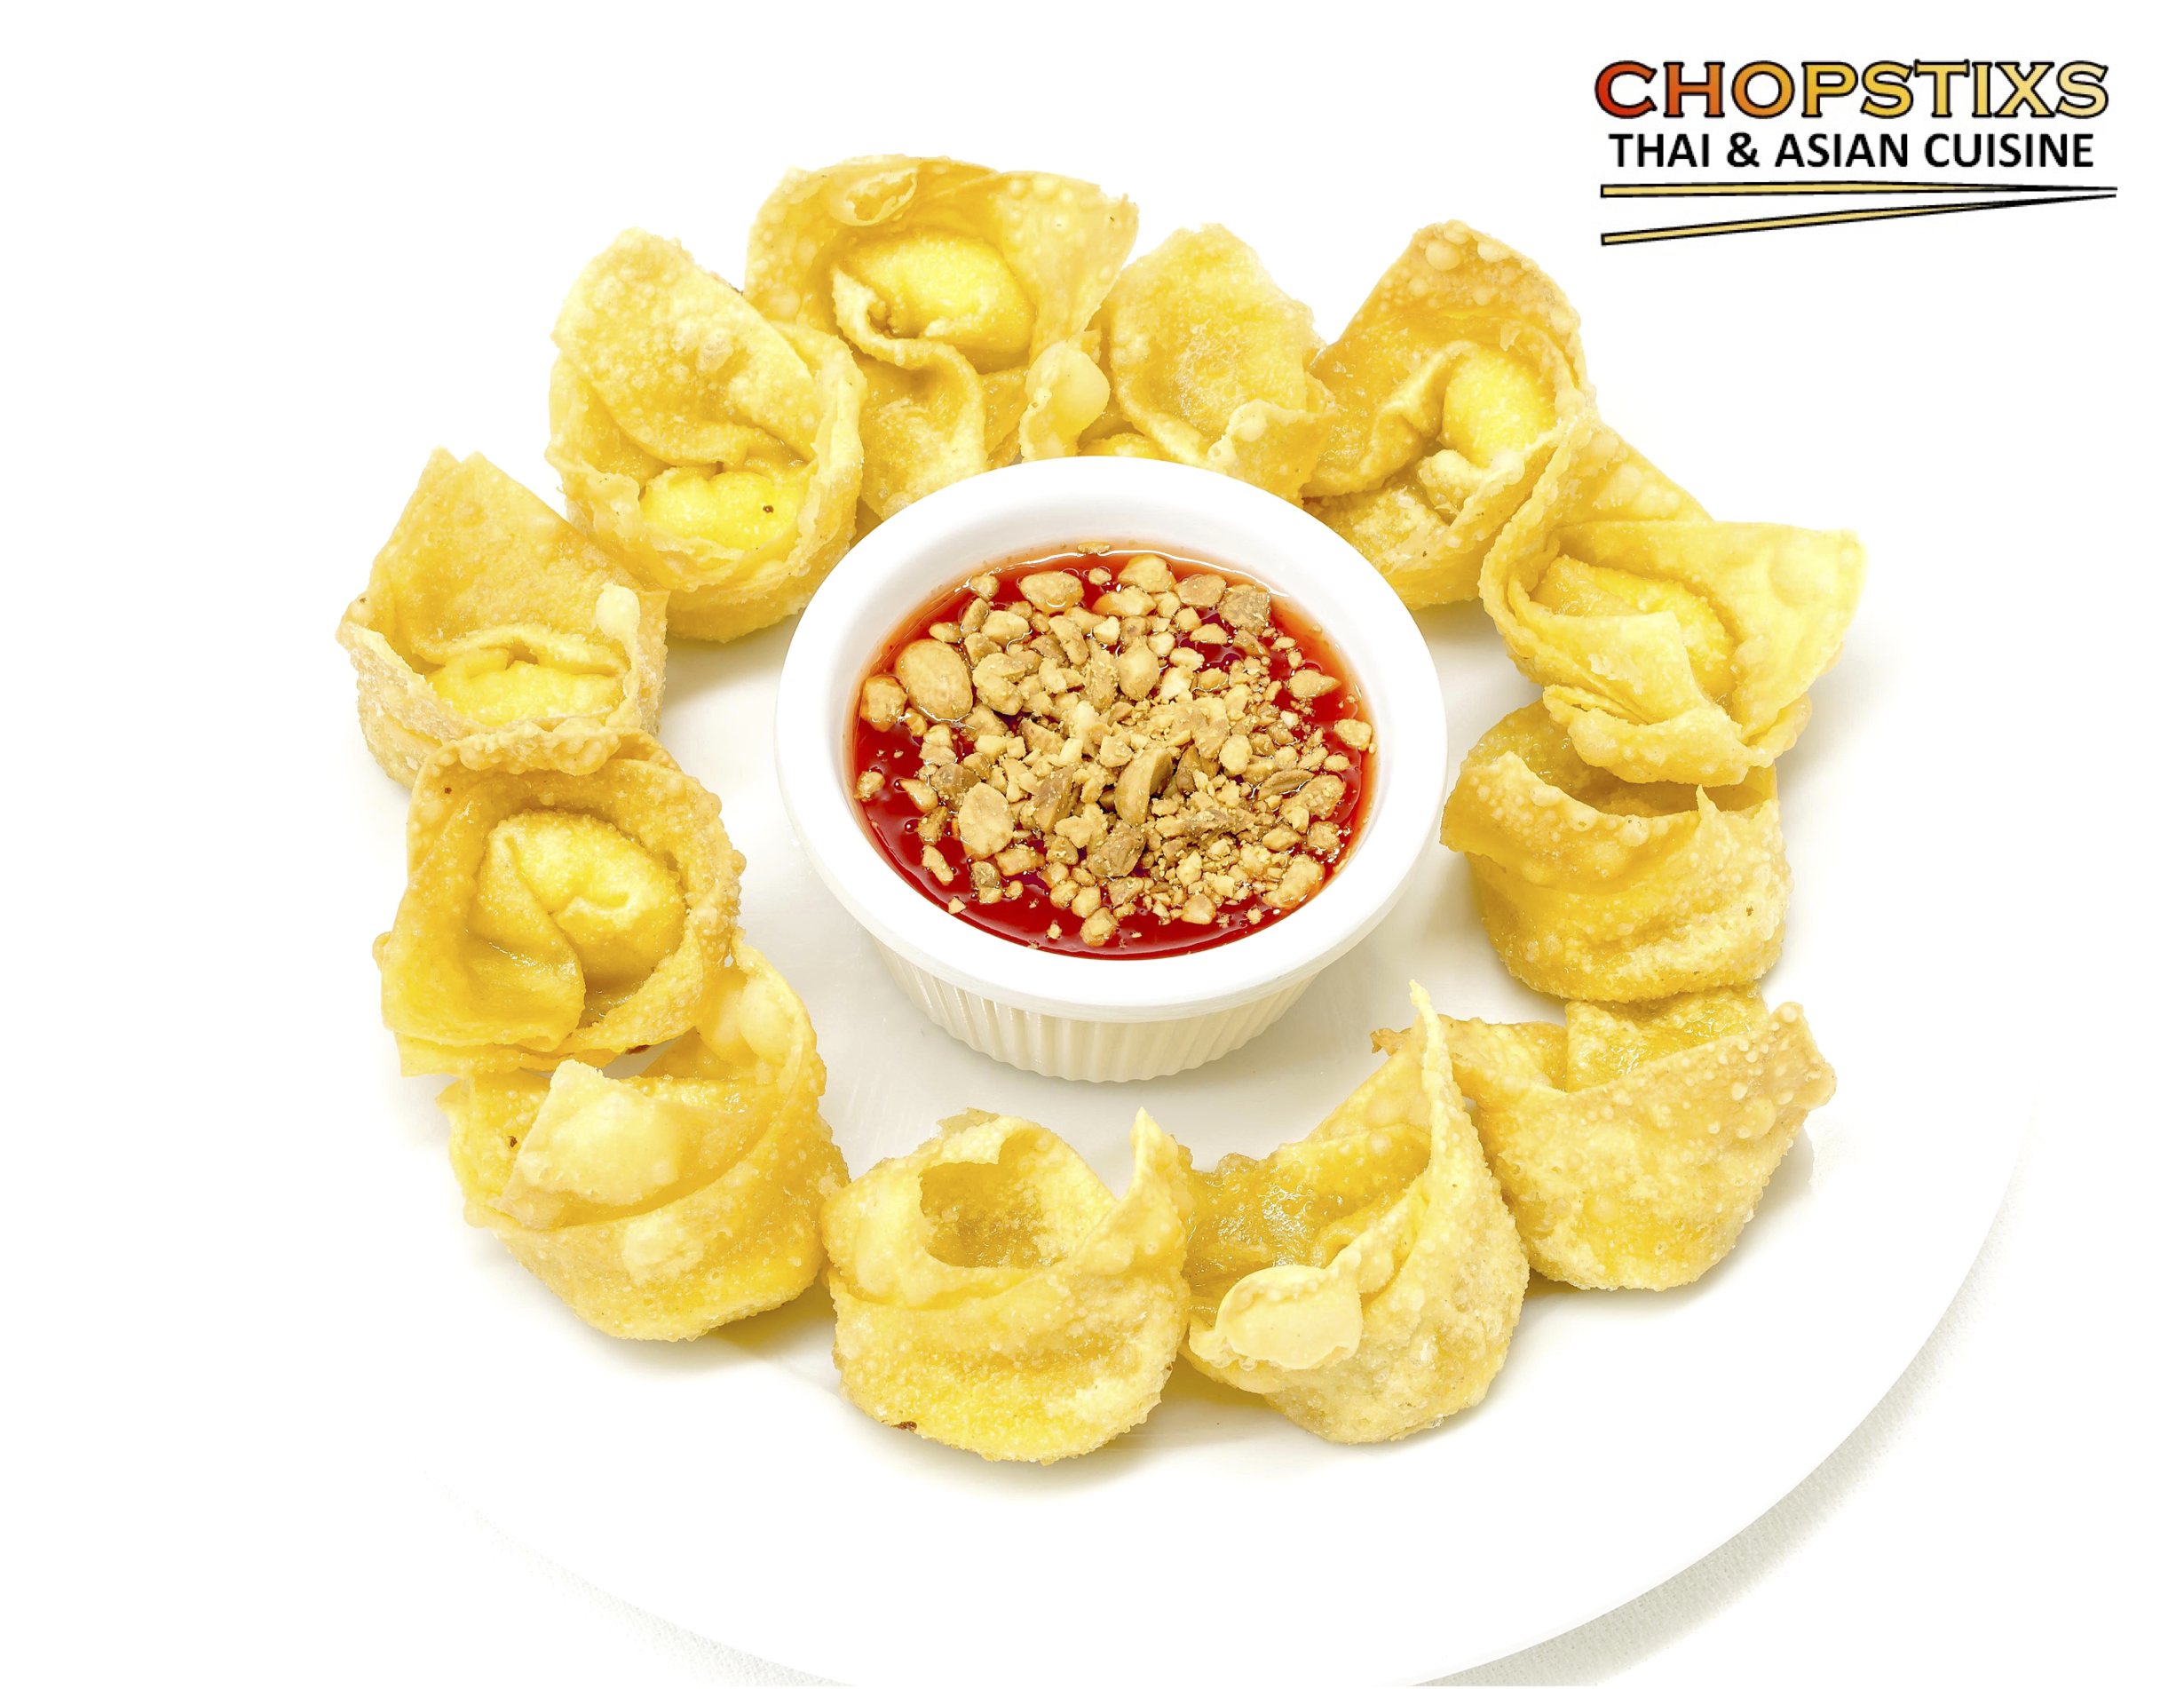 Fried Cheese Wonton (12 Pcs.) Image